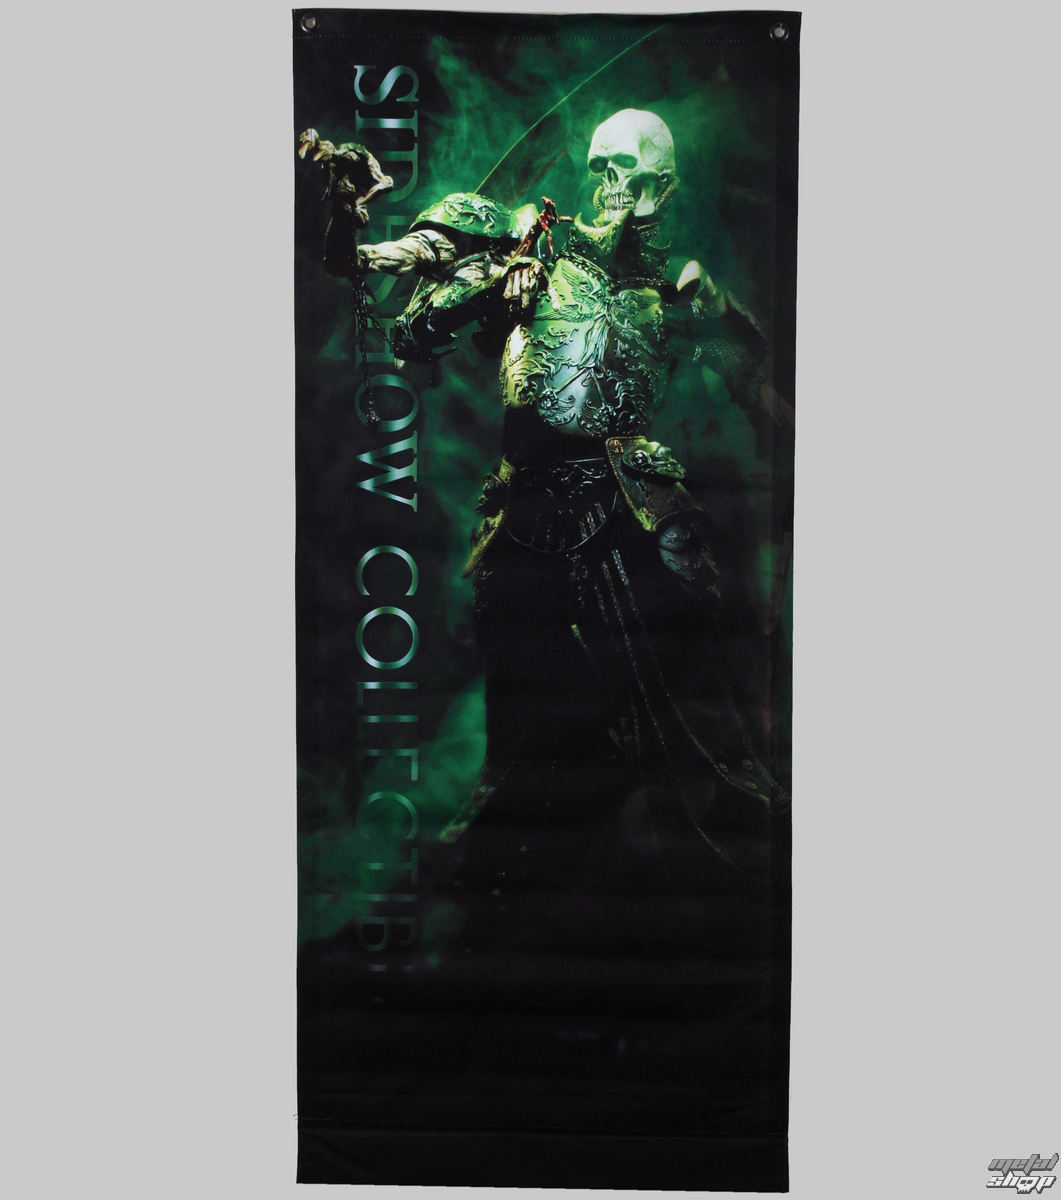 vlajka (baner) The Reaper - 76x183 - SSBAN005L